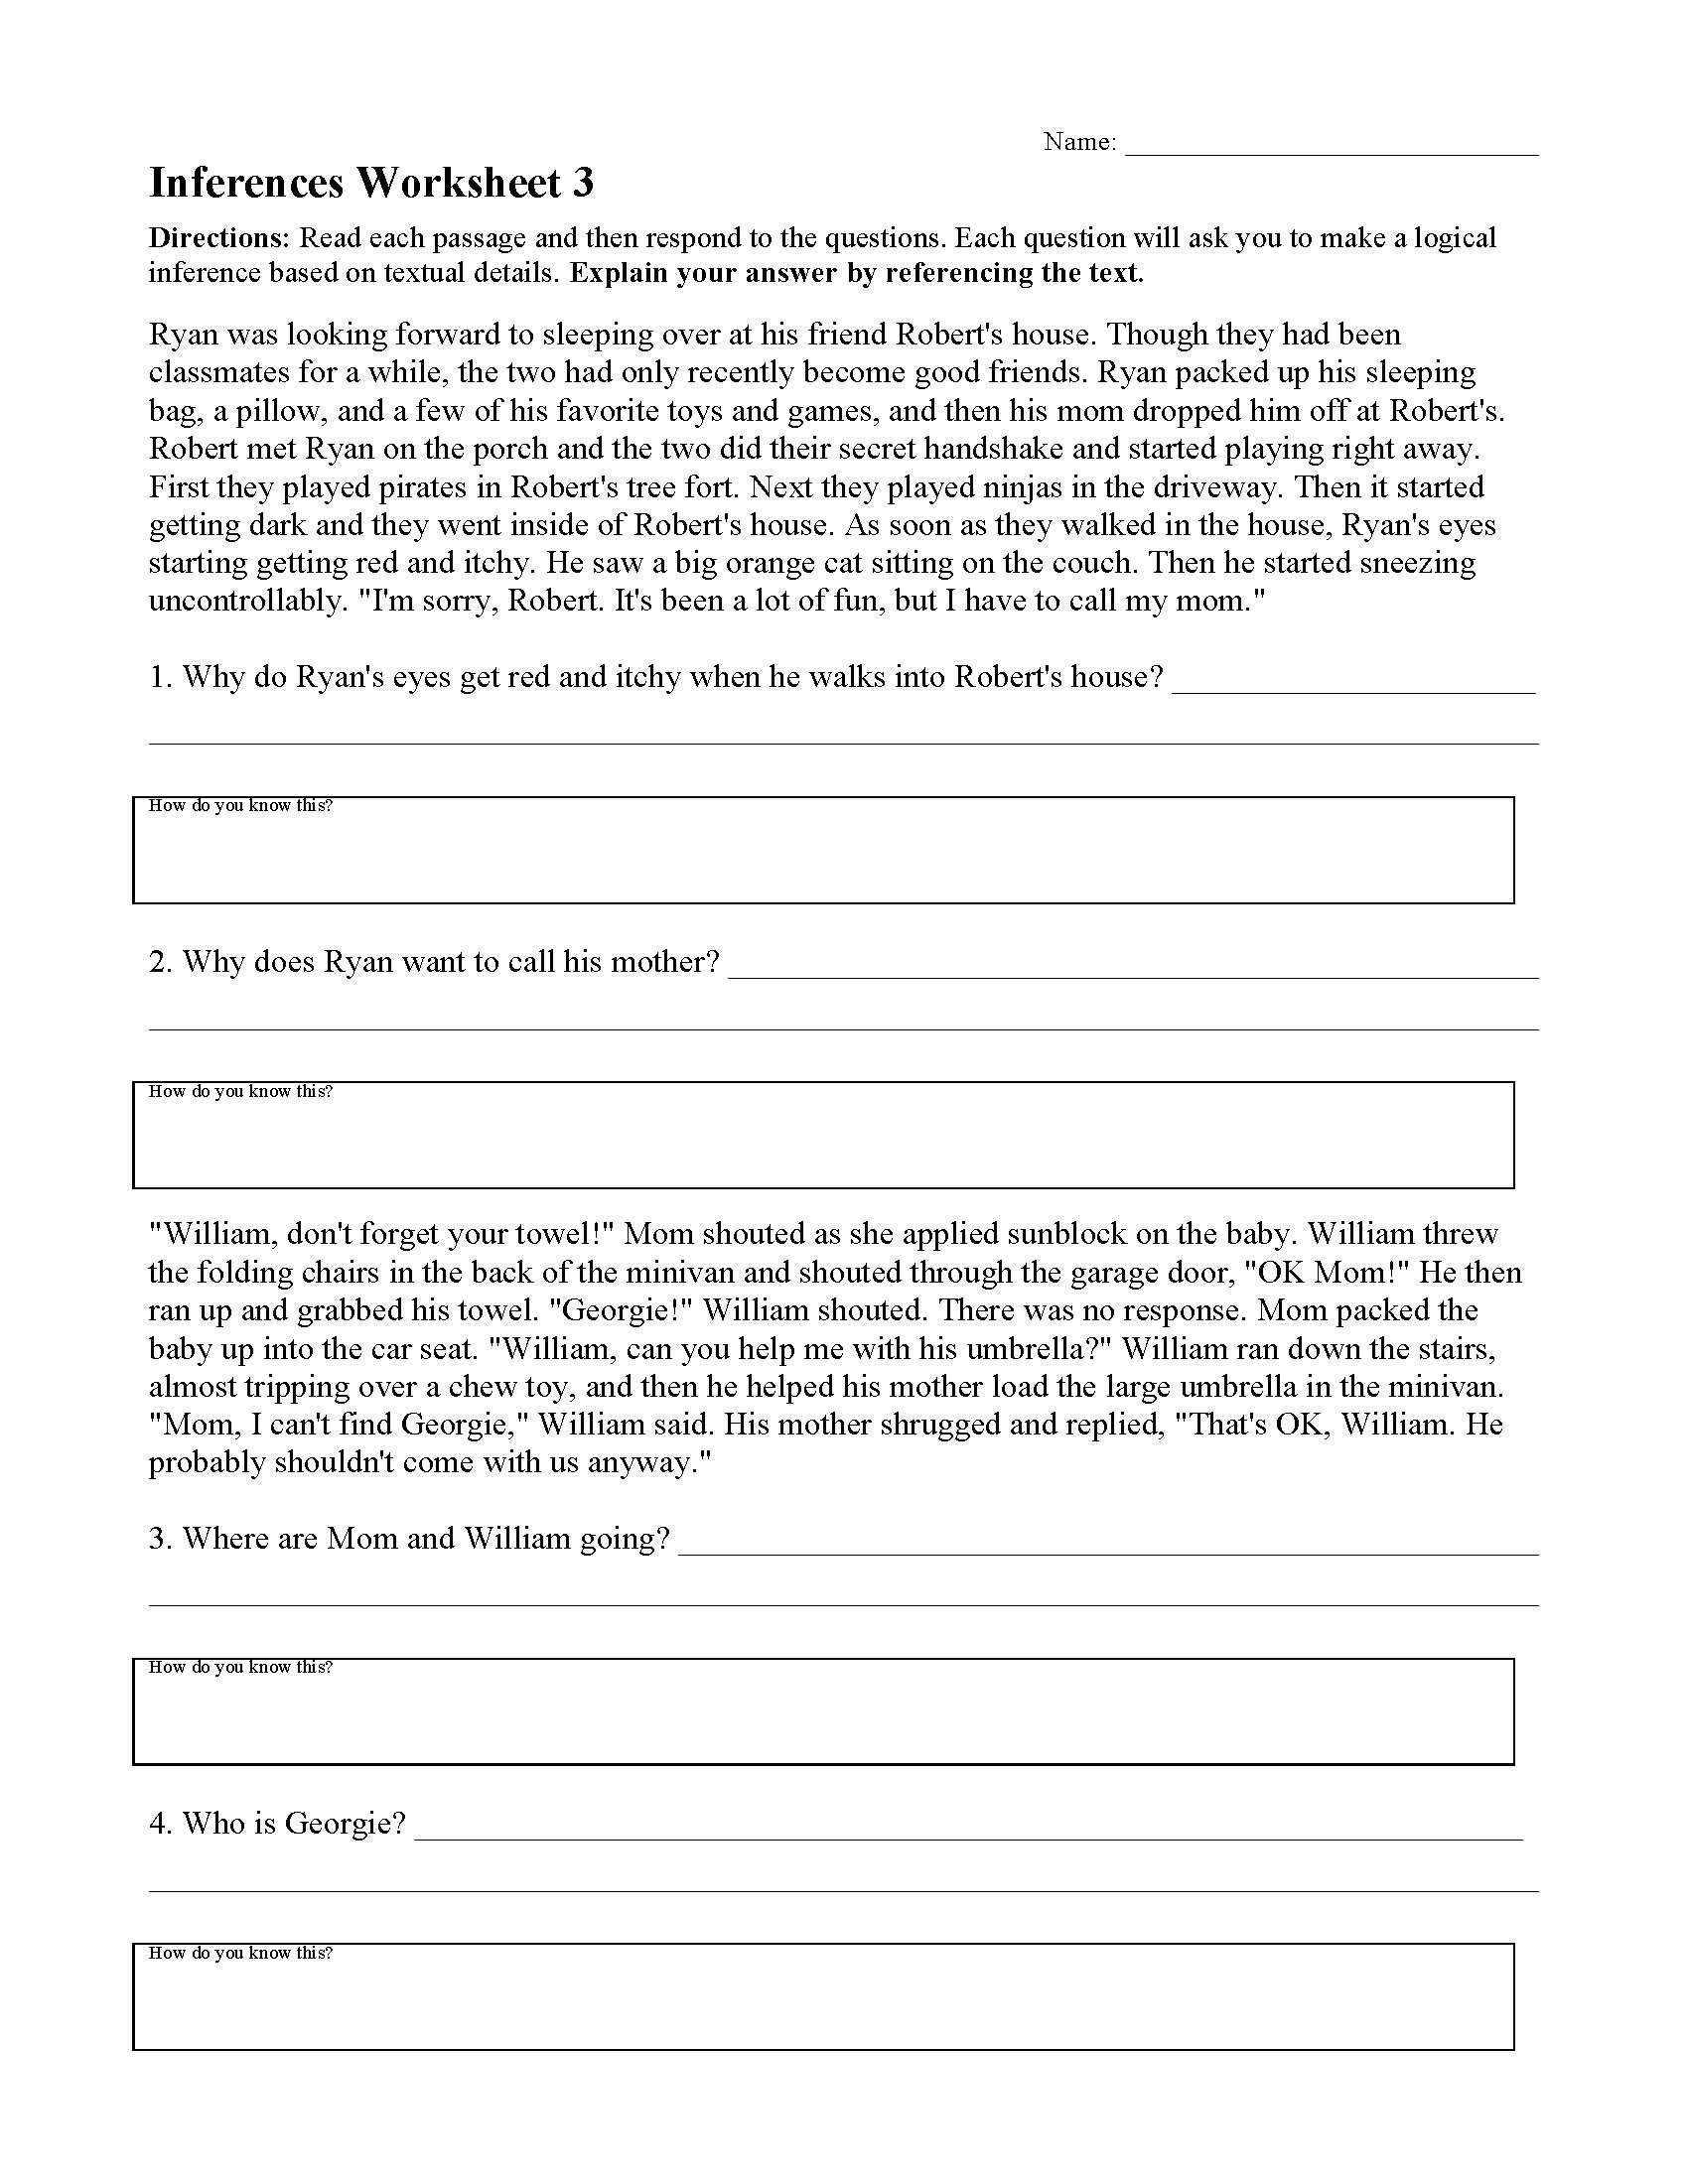 Inference Worksheets for 4th Grade Inferences Worksheets